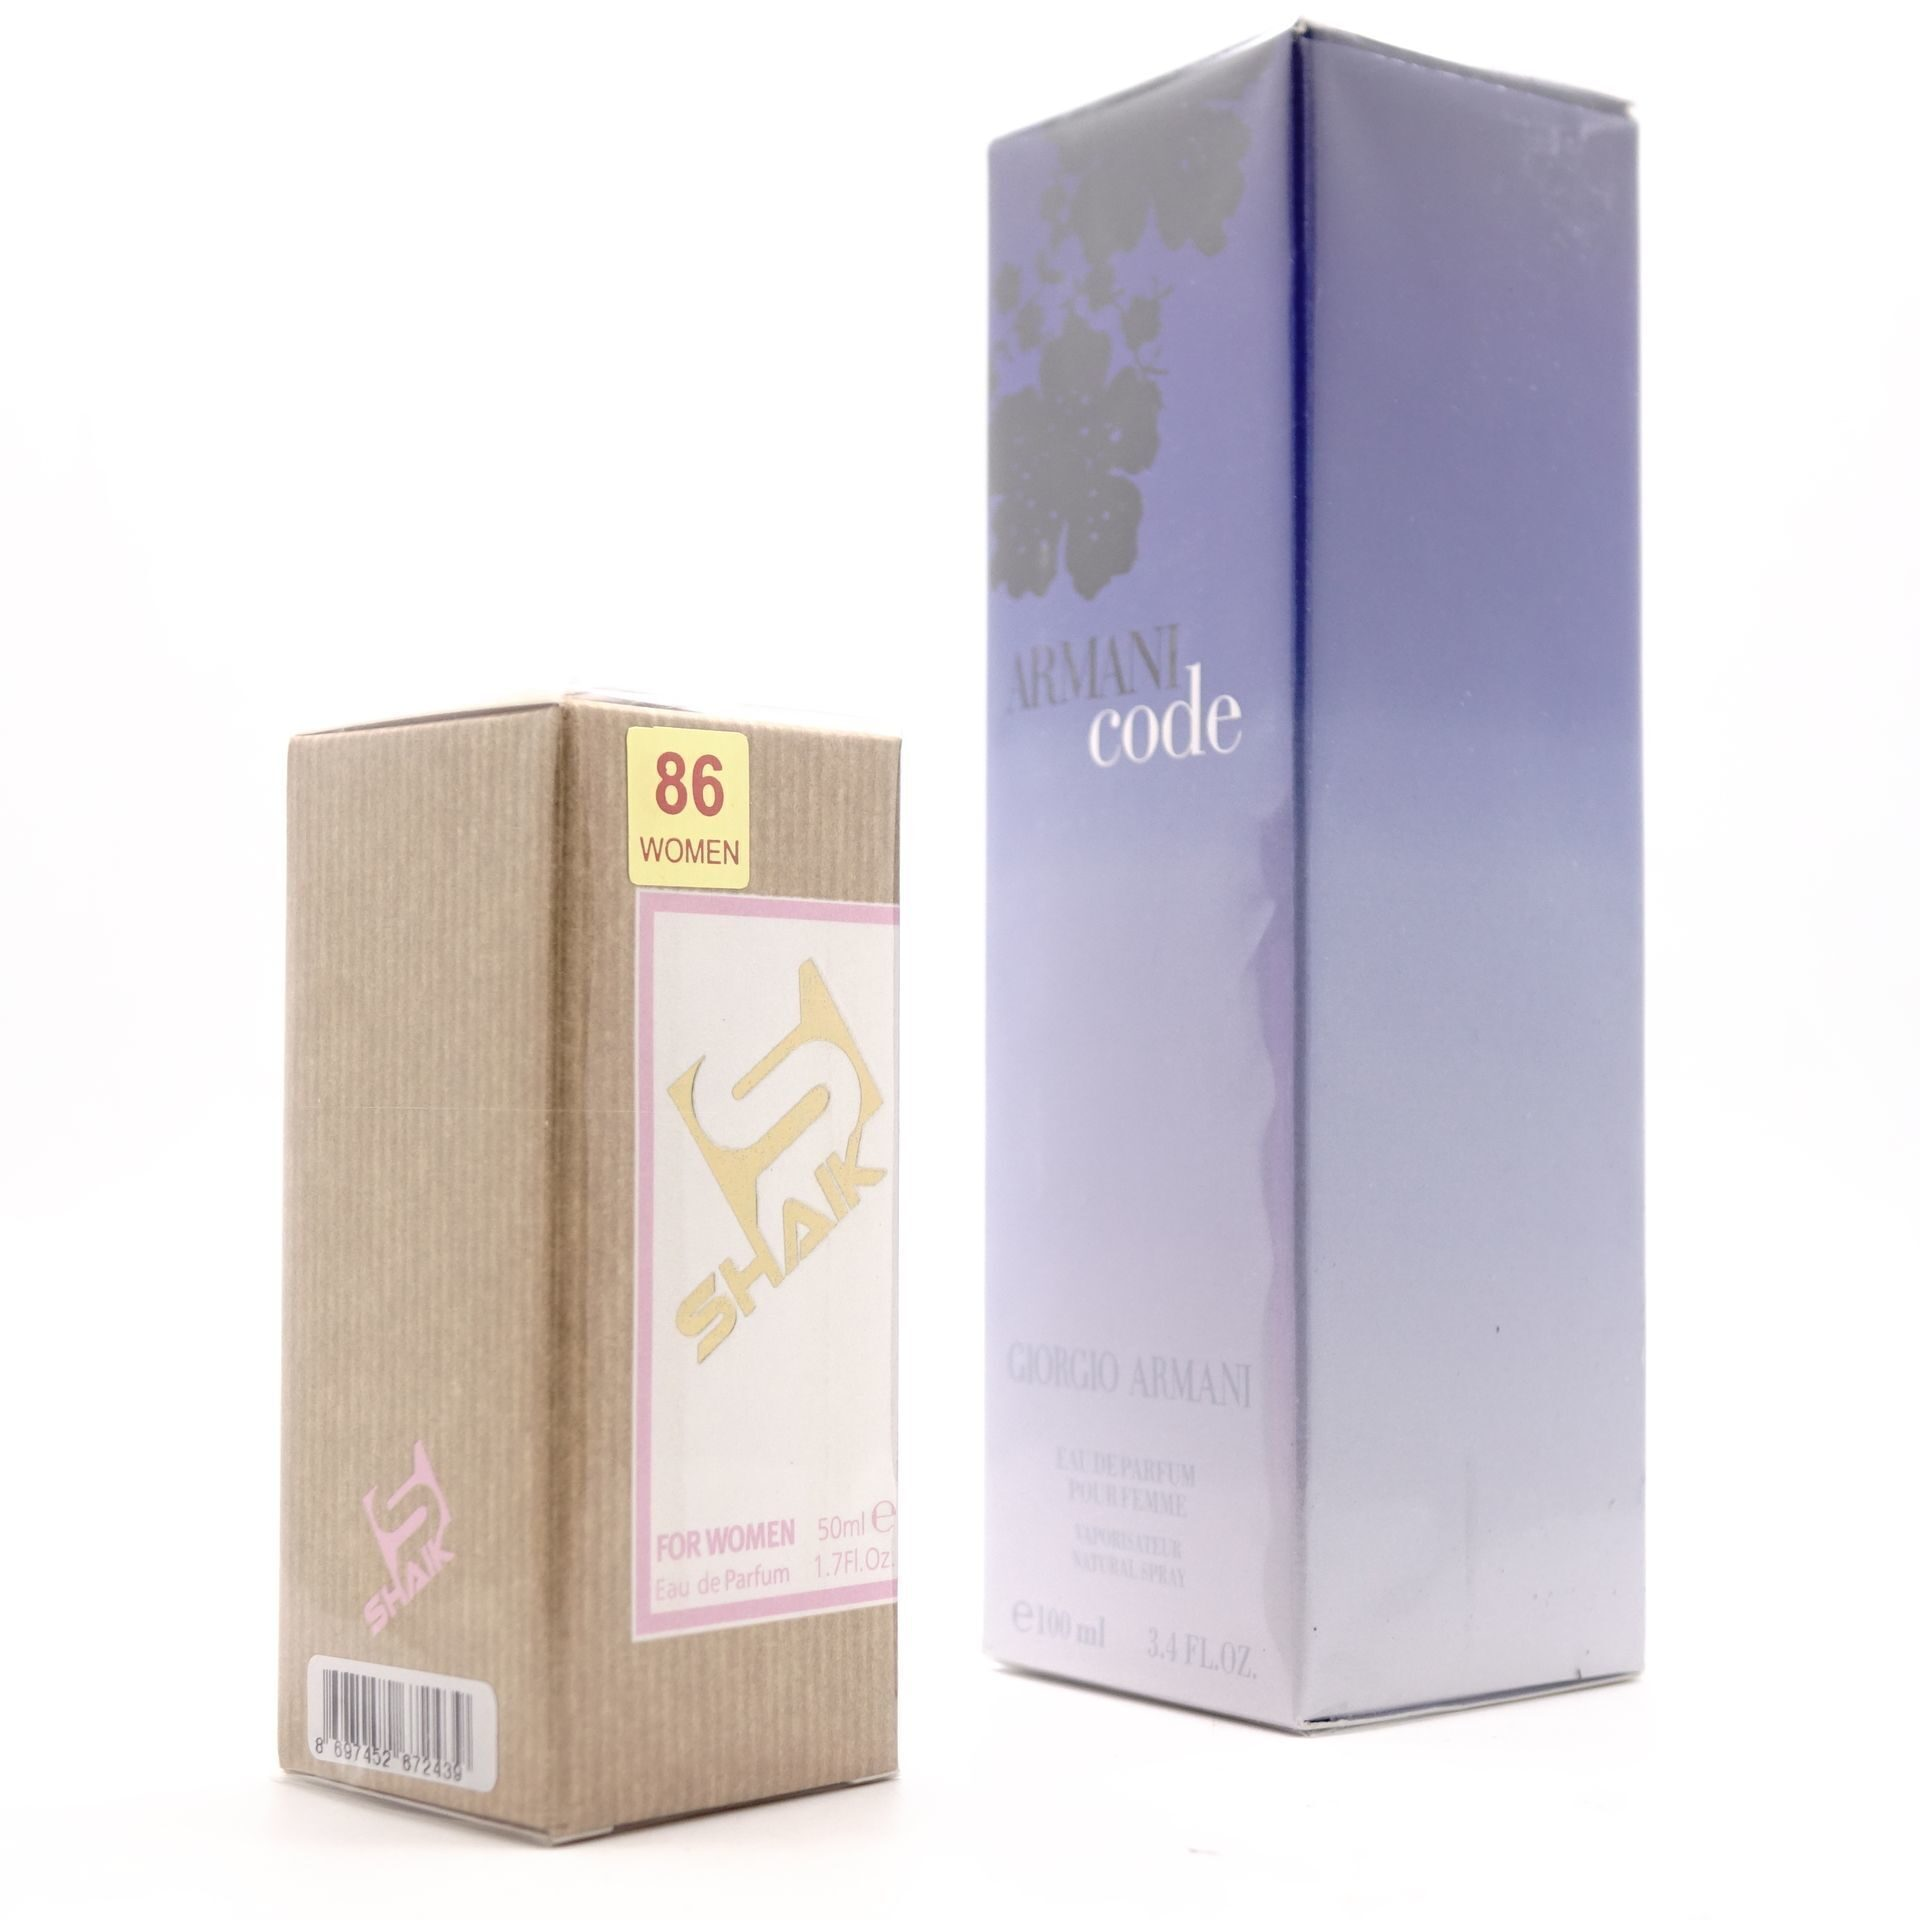 SHAIK W 86 (GIORGIO ARMANI CODE FOR WOMEN) 50ml